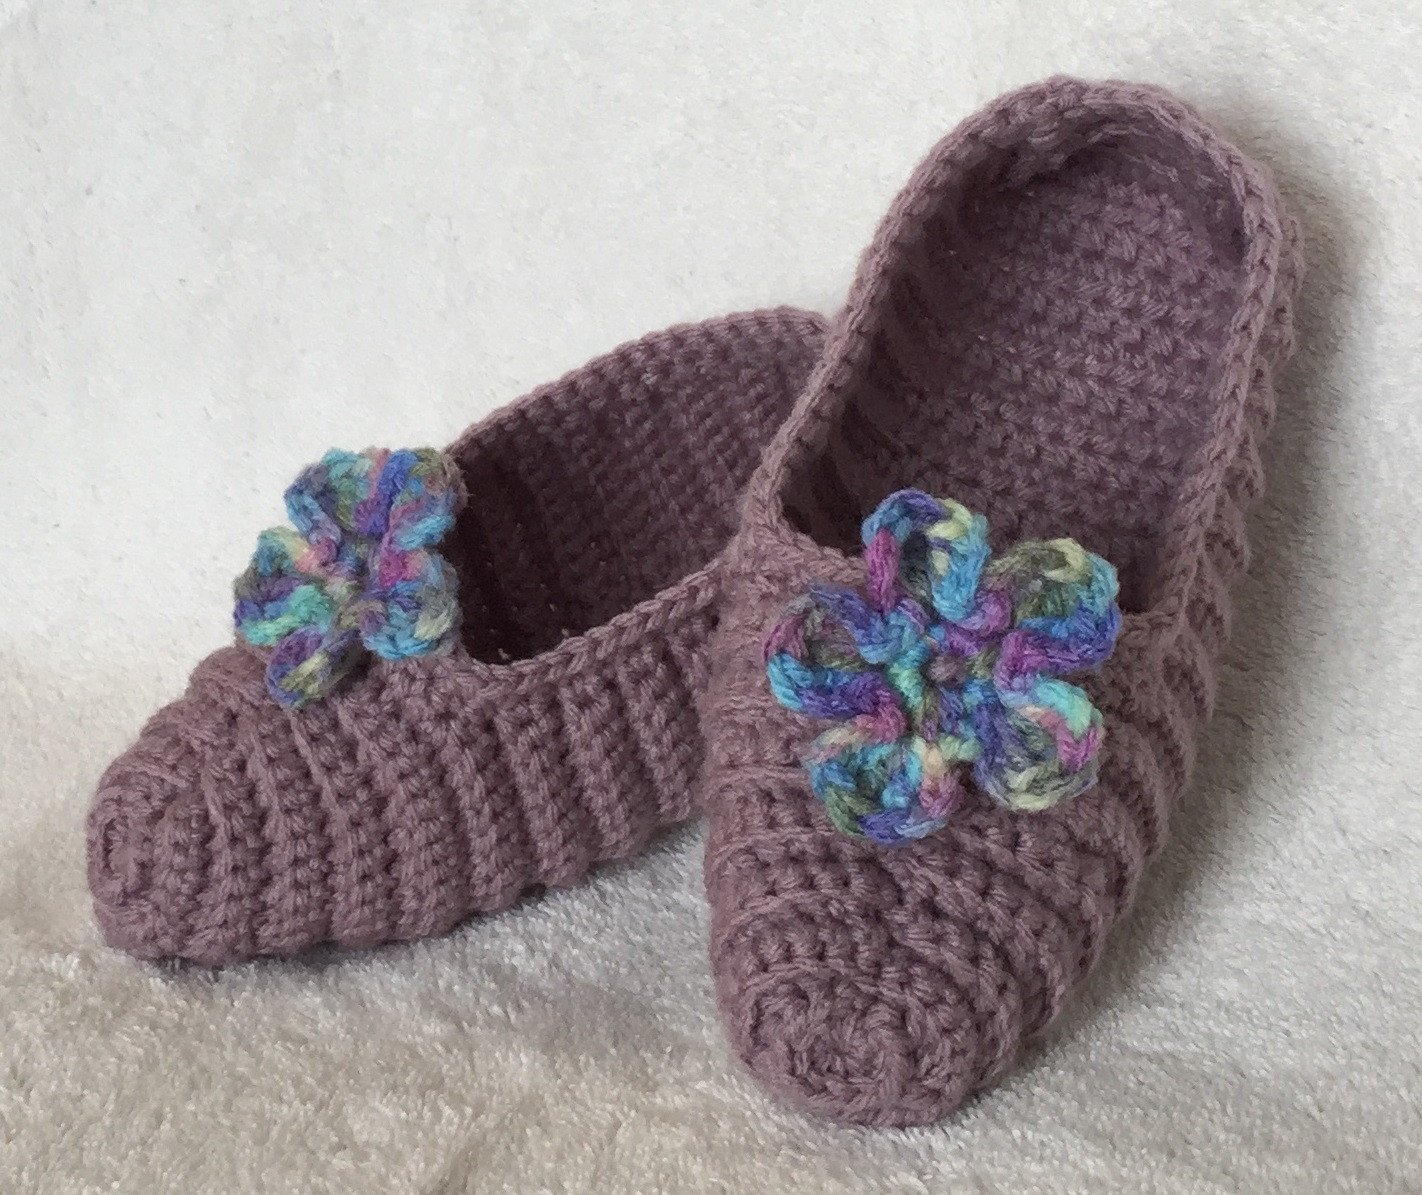 KweenBee and Me Crocheted Ribbed Slippers